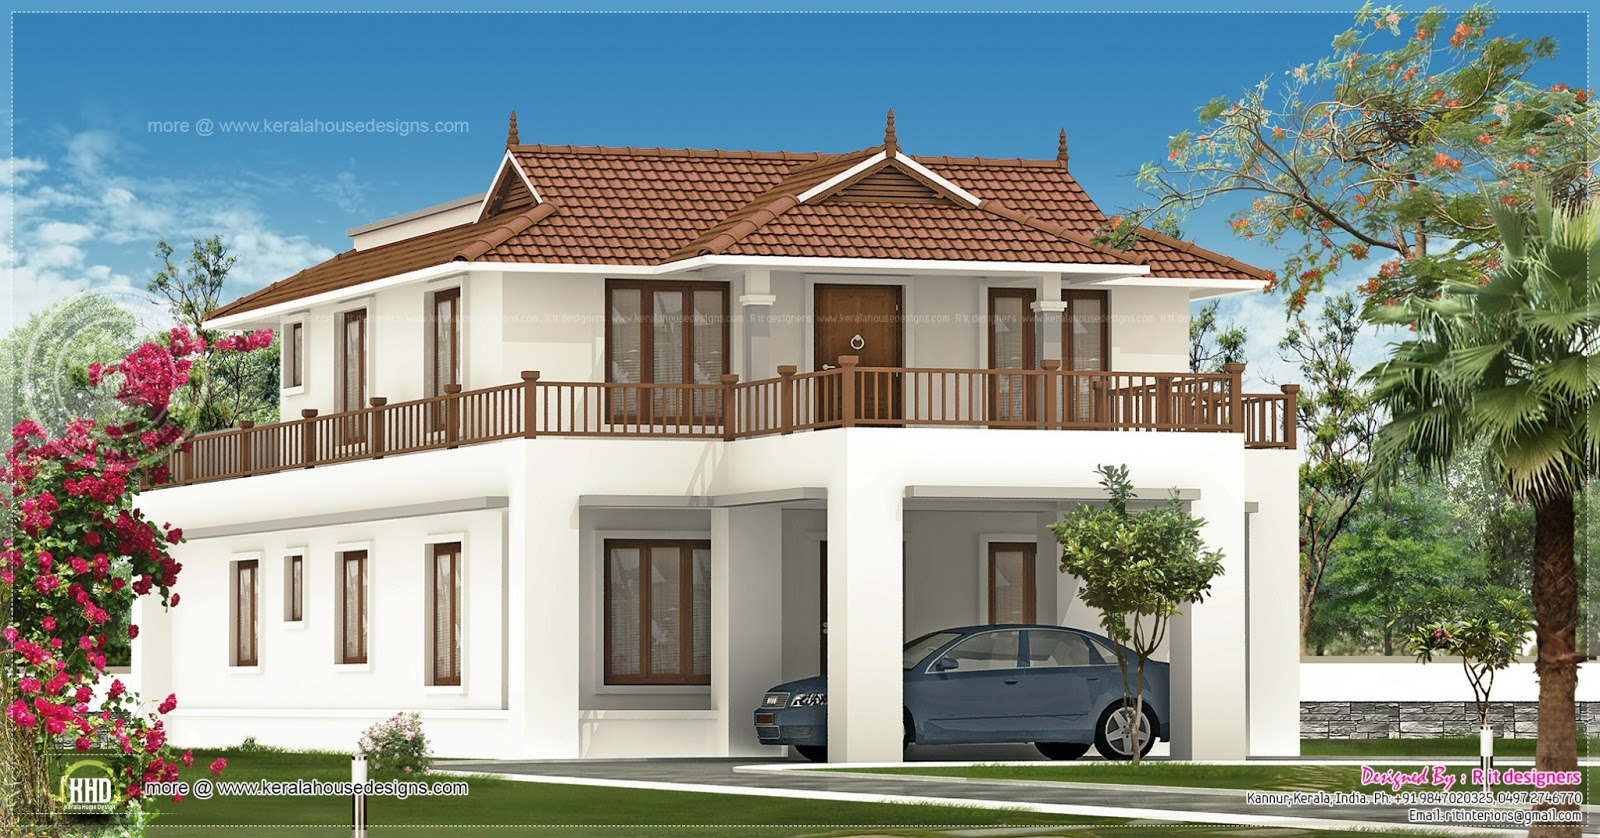 2820 square feet house exterior design home kerala plans for House outdoor design